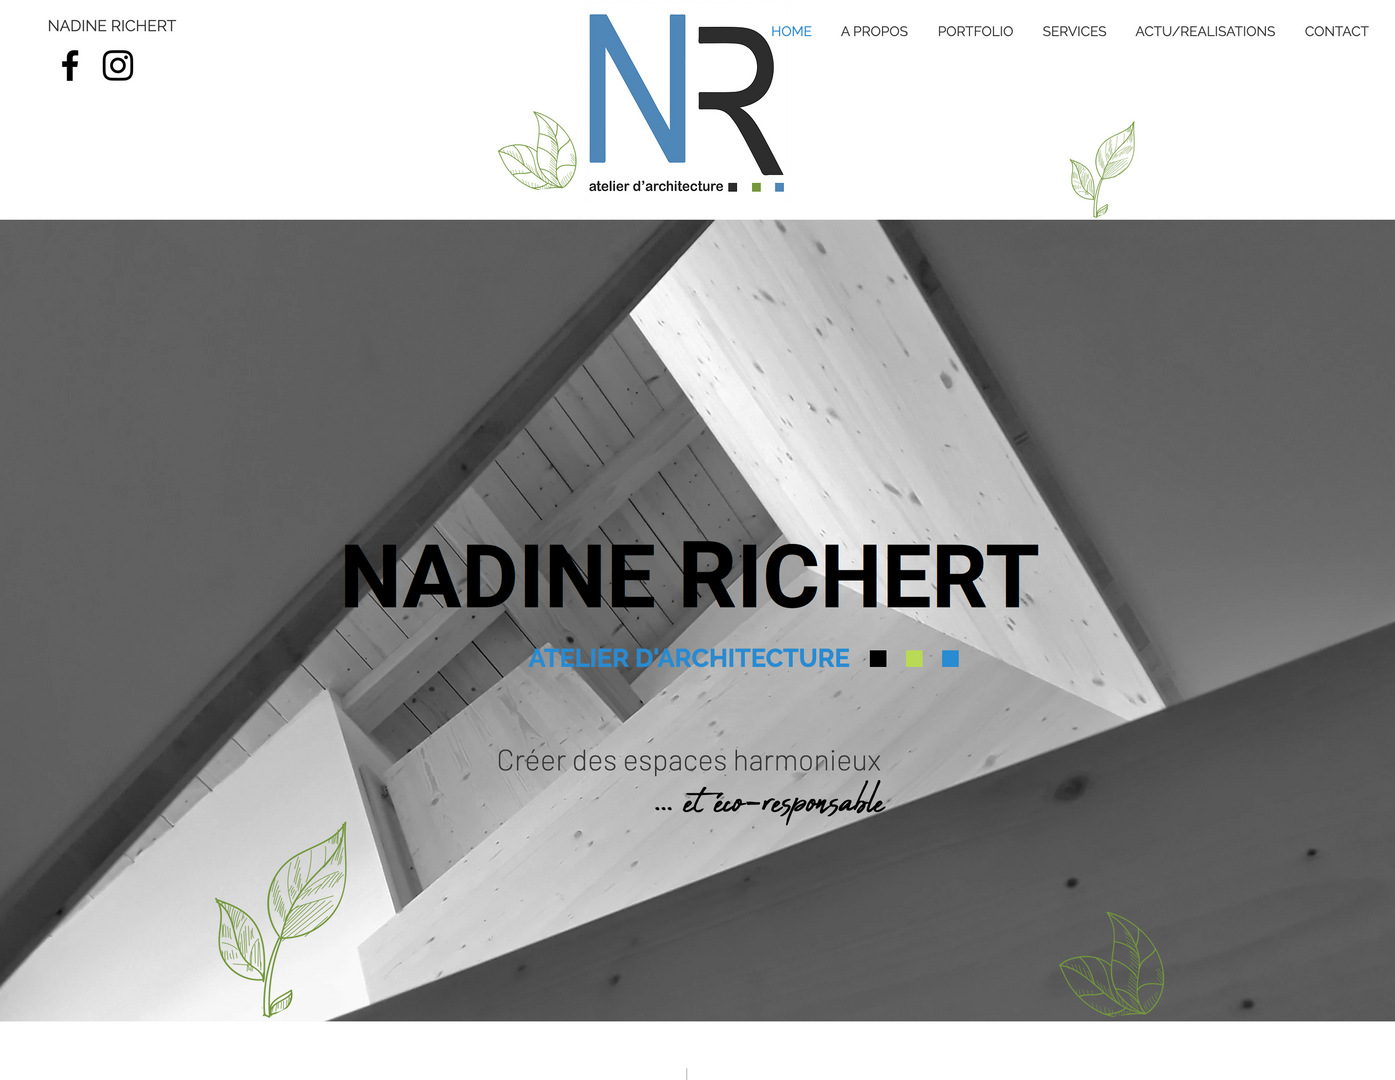 Nadine Richter architecte